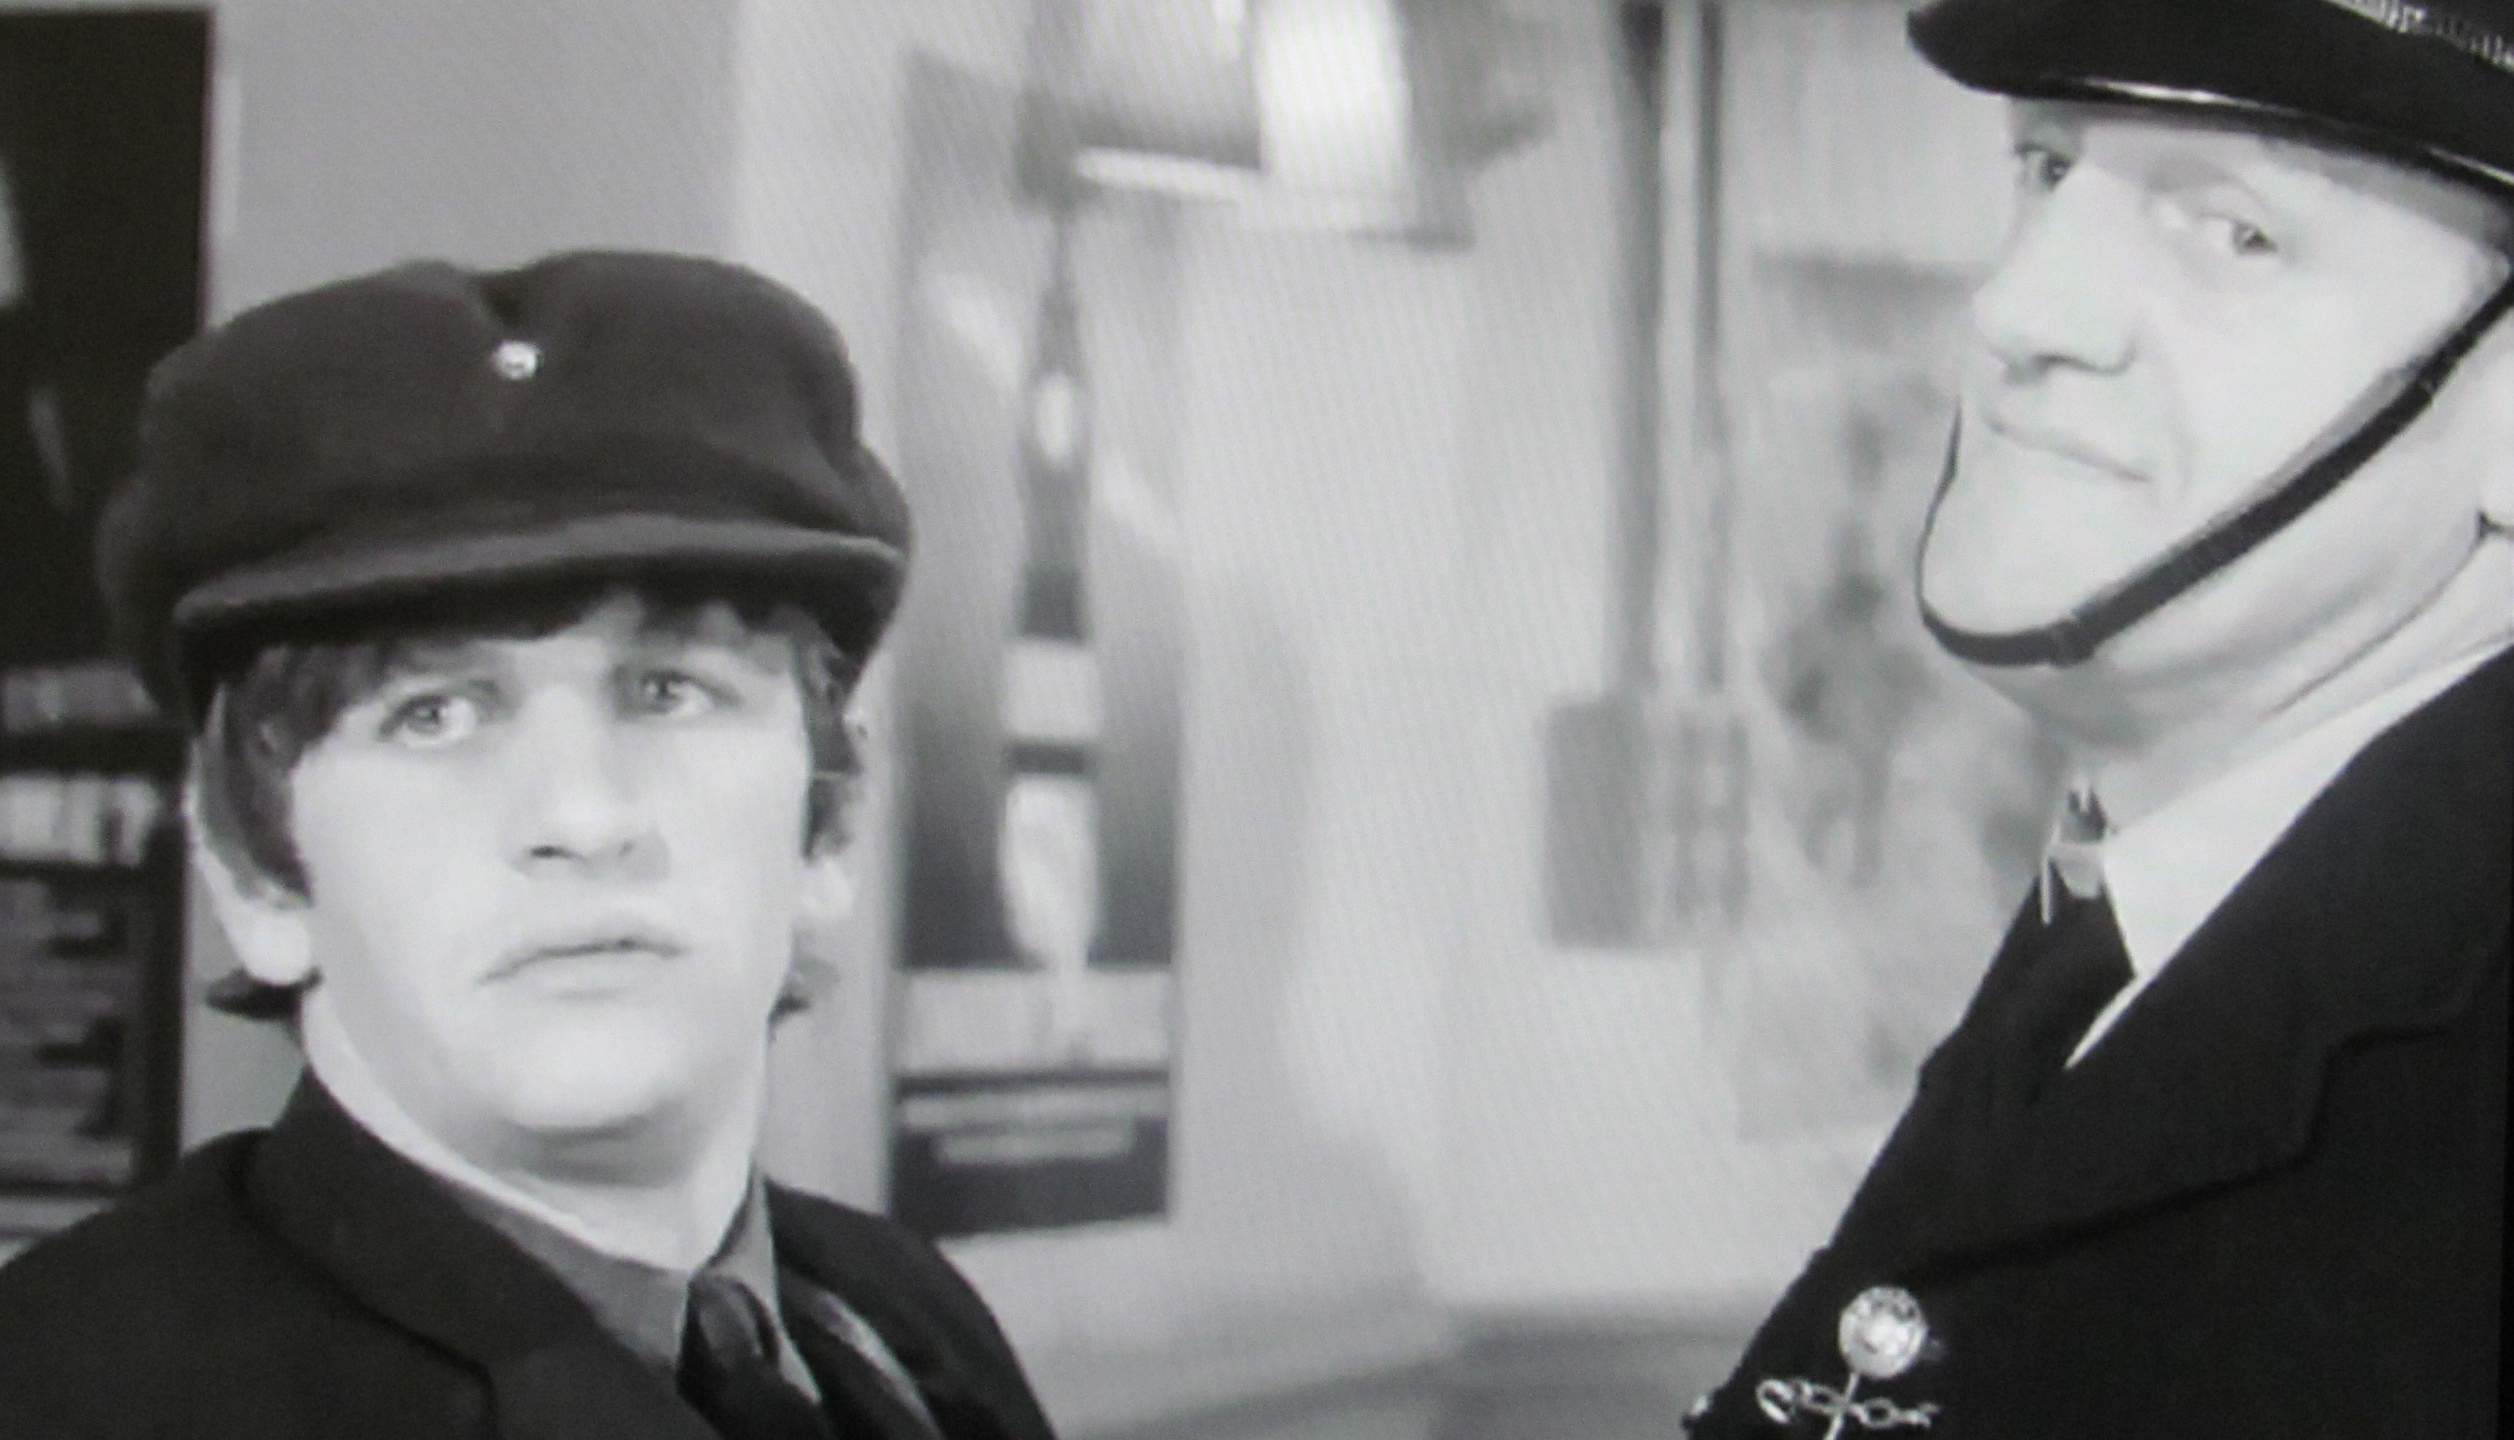 Beatles A Hard Days Night Things We Said Today